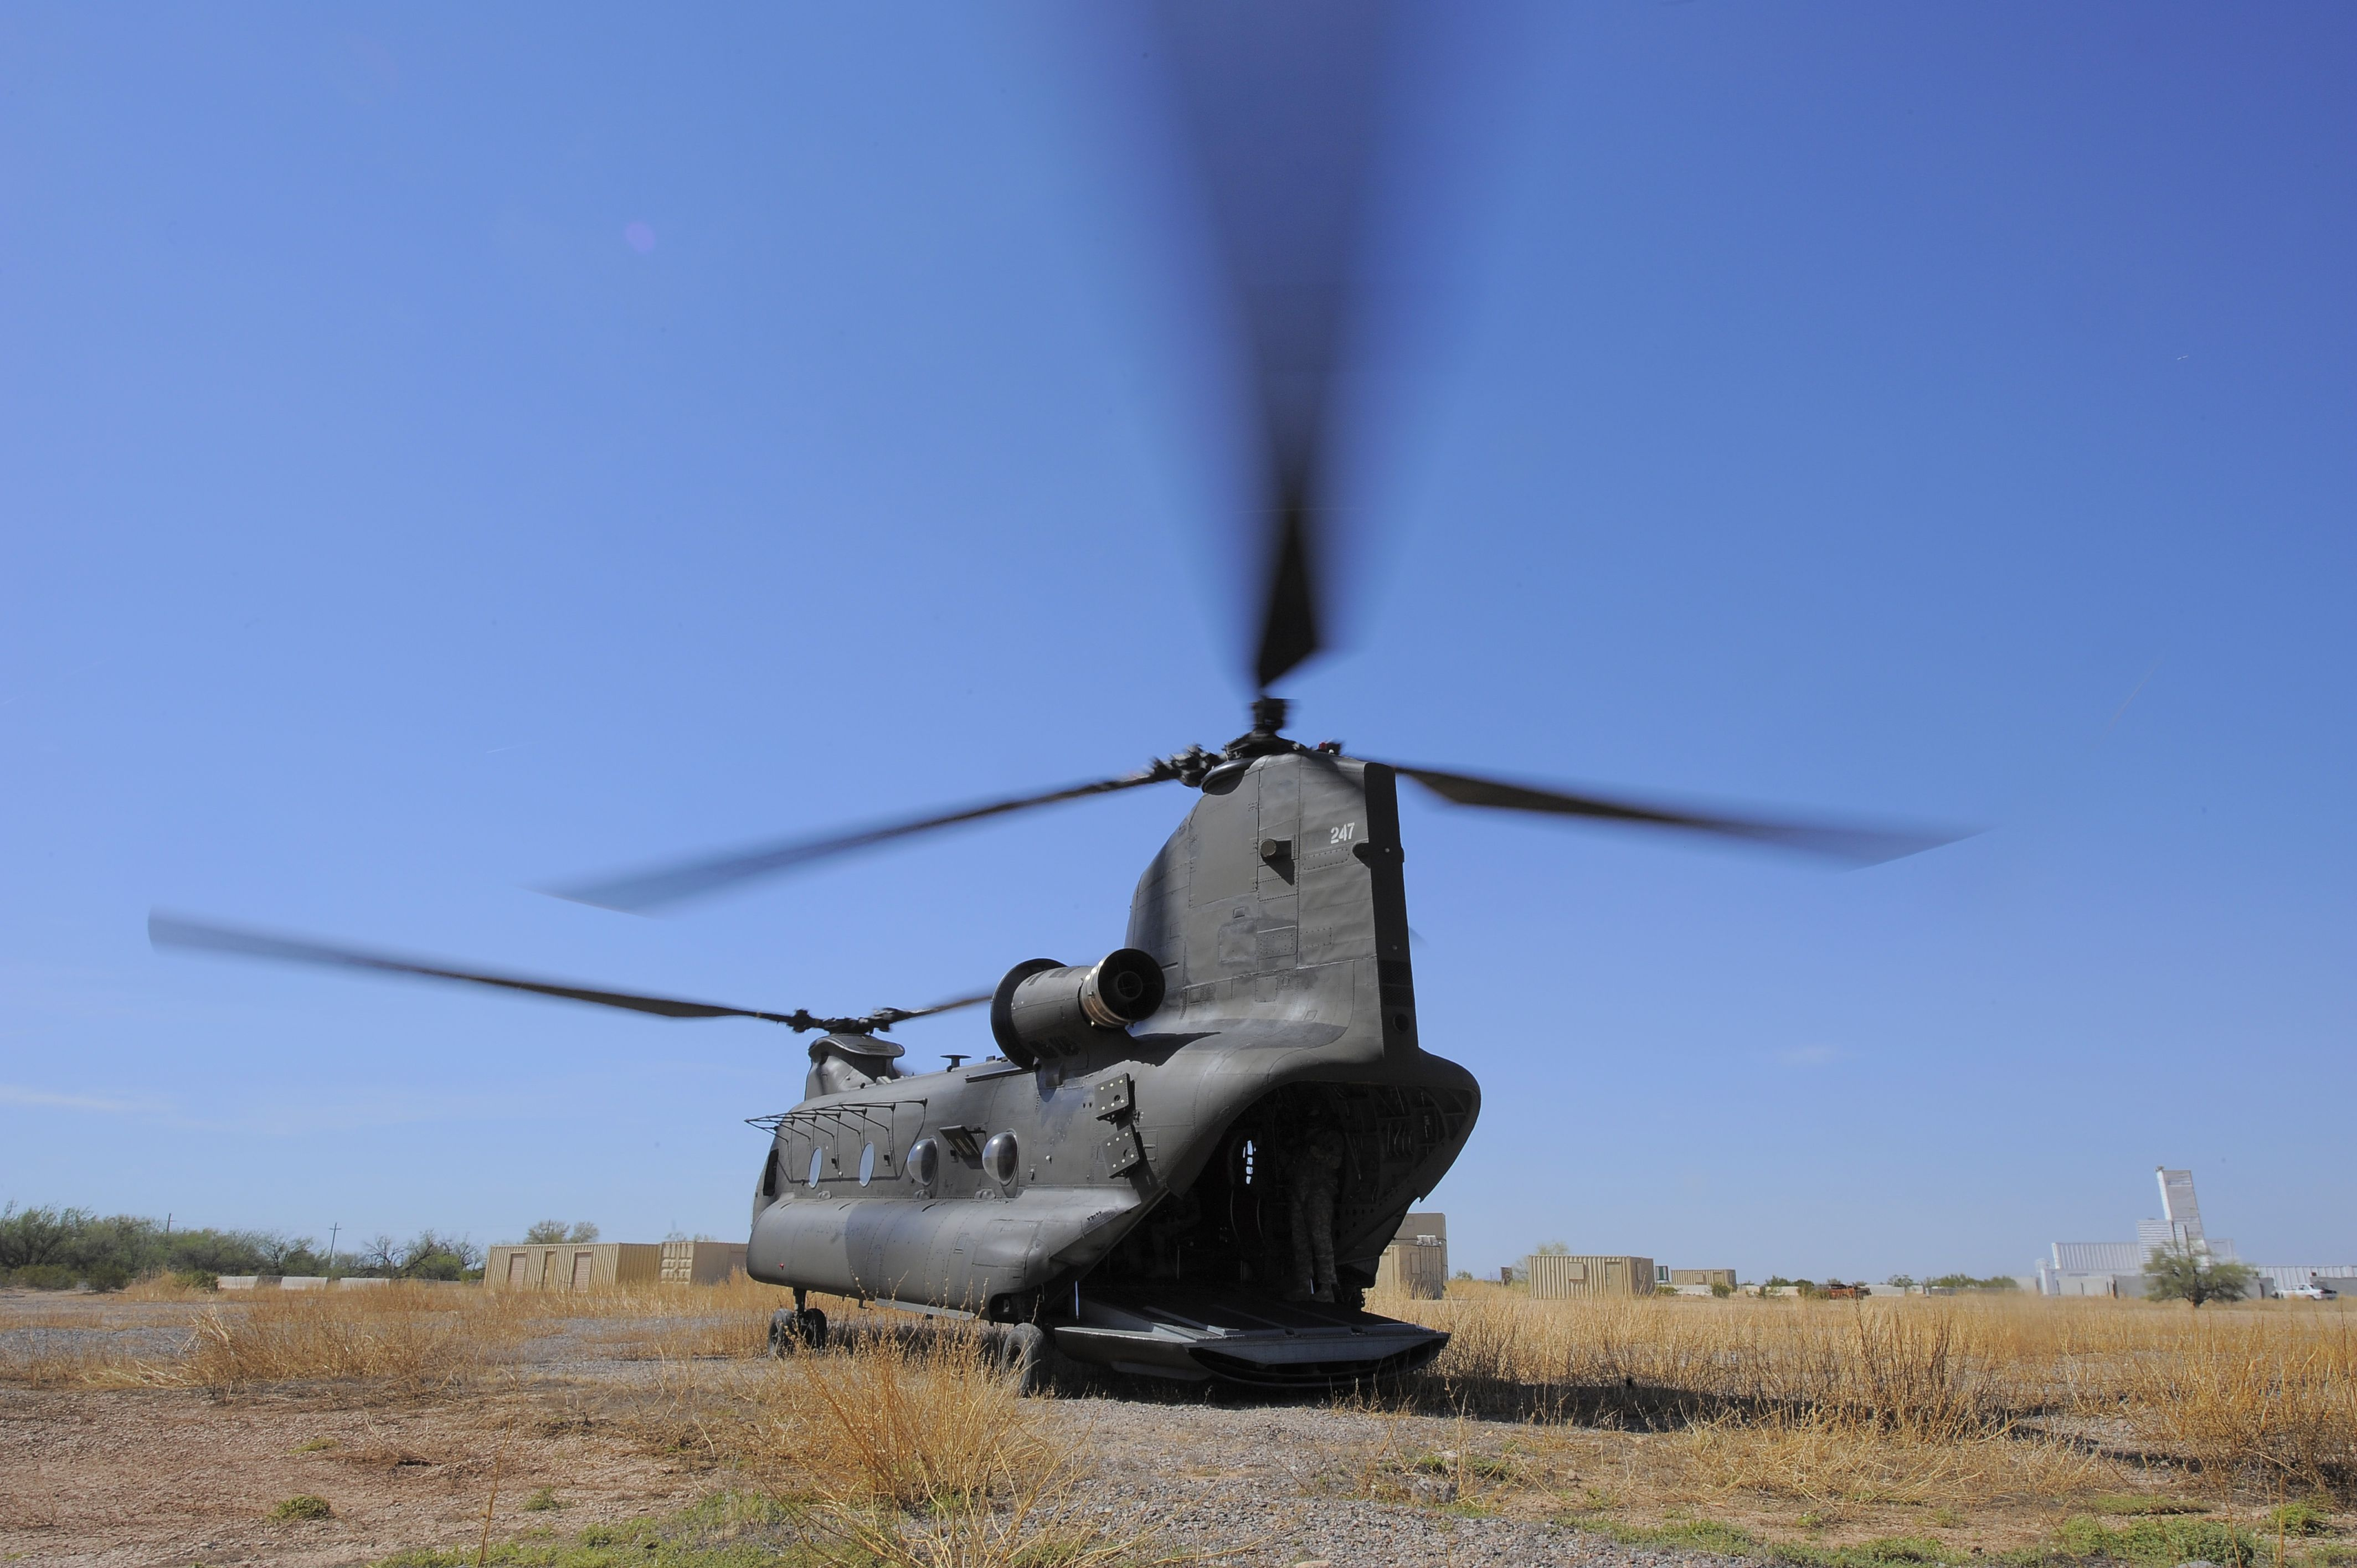 A U.S. Army CH47D Chinook from the Montana Army National